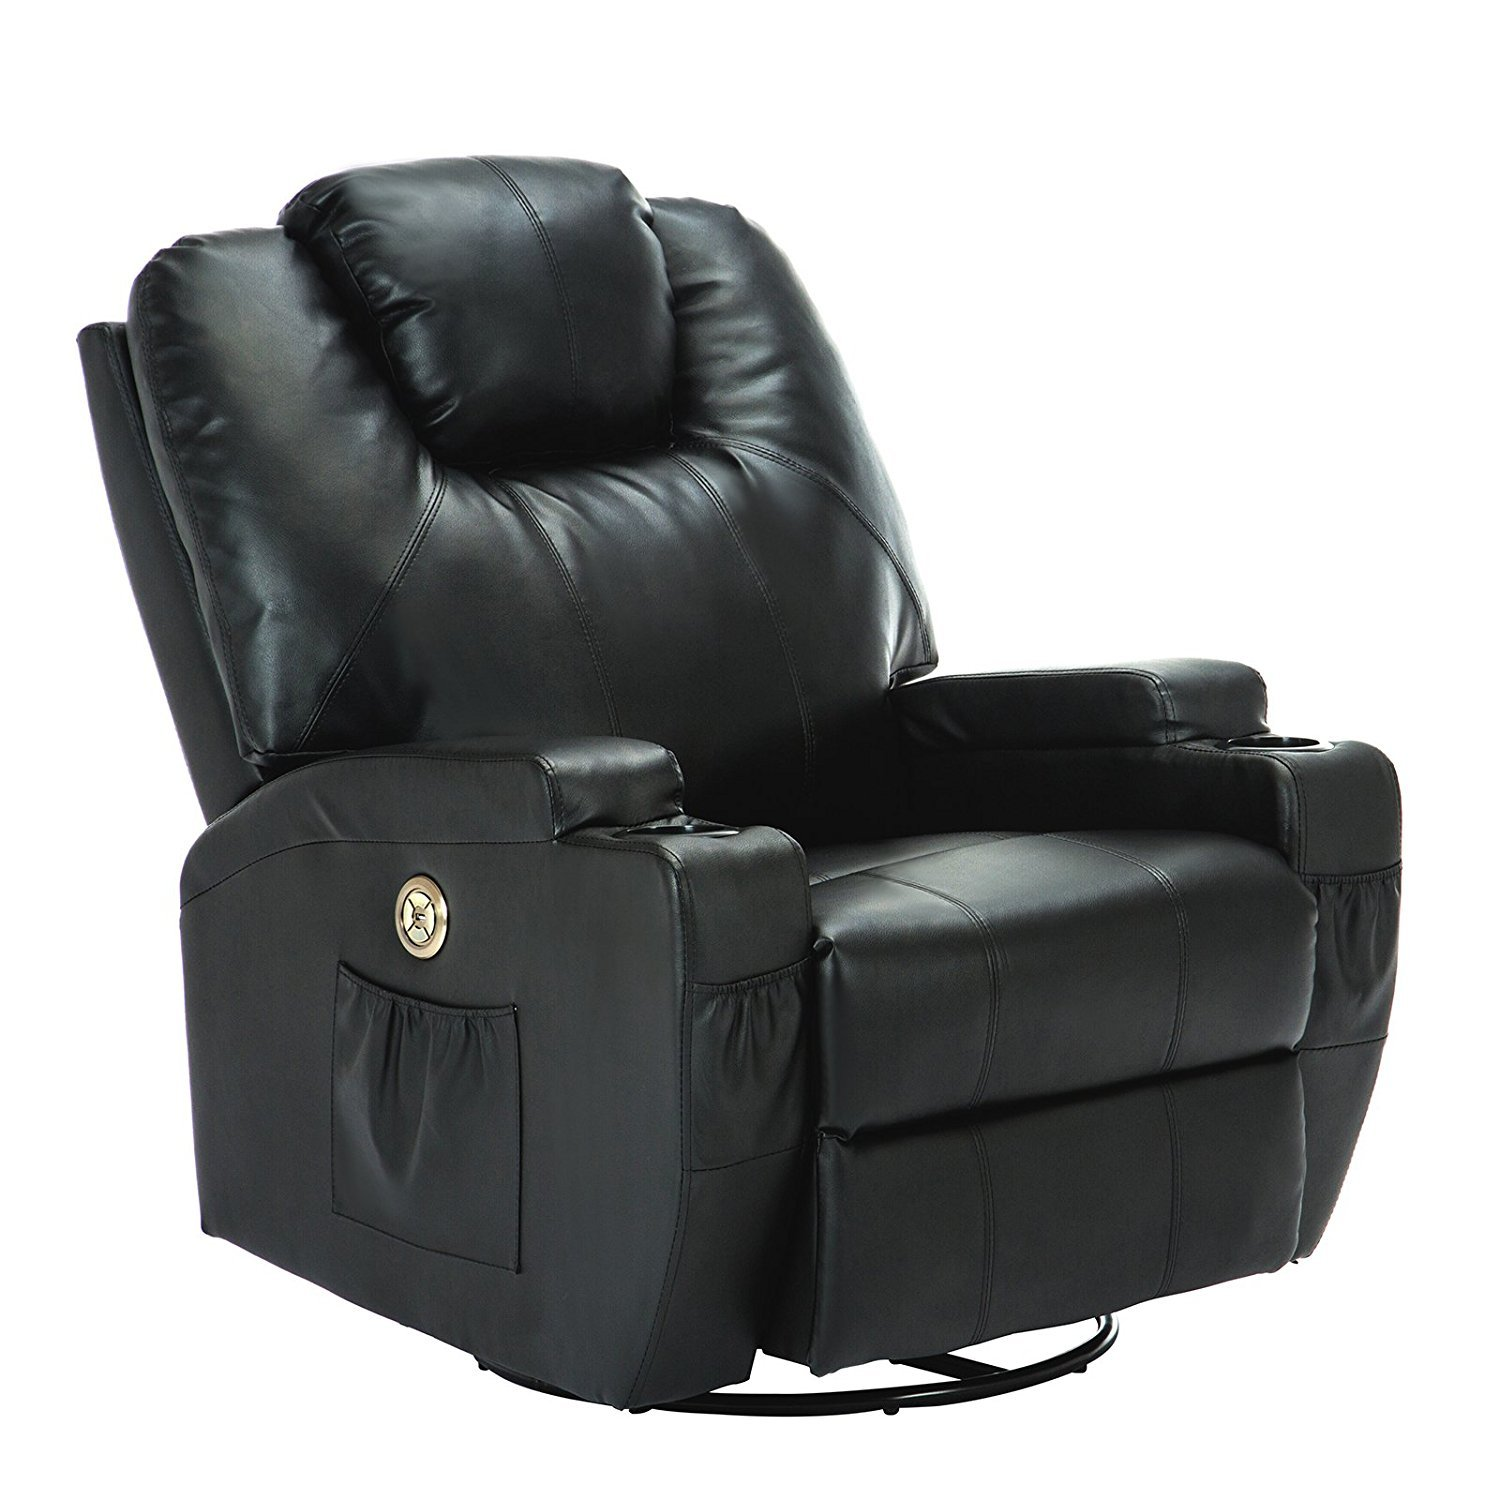 Uenjoy Massage Recliner Deluxe Electric Massage Chair Massage Sofa with Heating System & 360°...